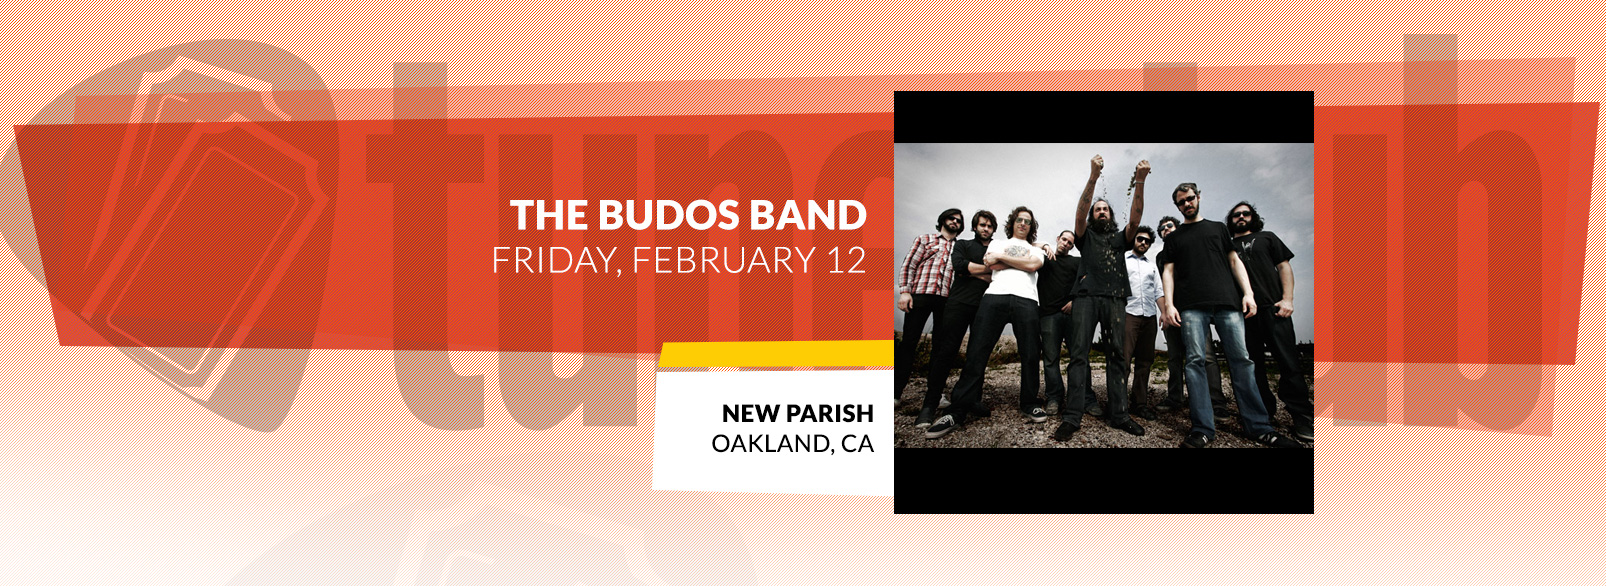 The Budos Band @ New Parish